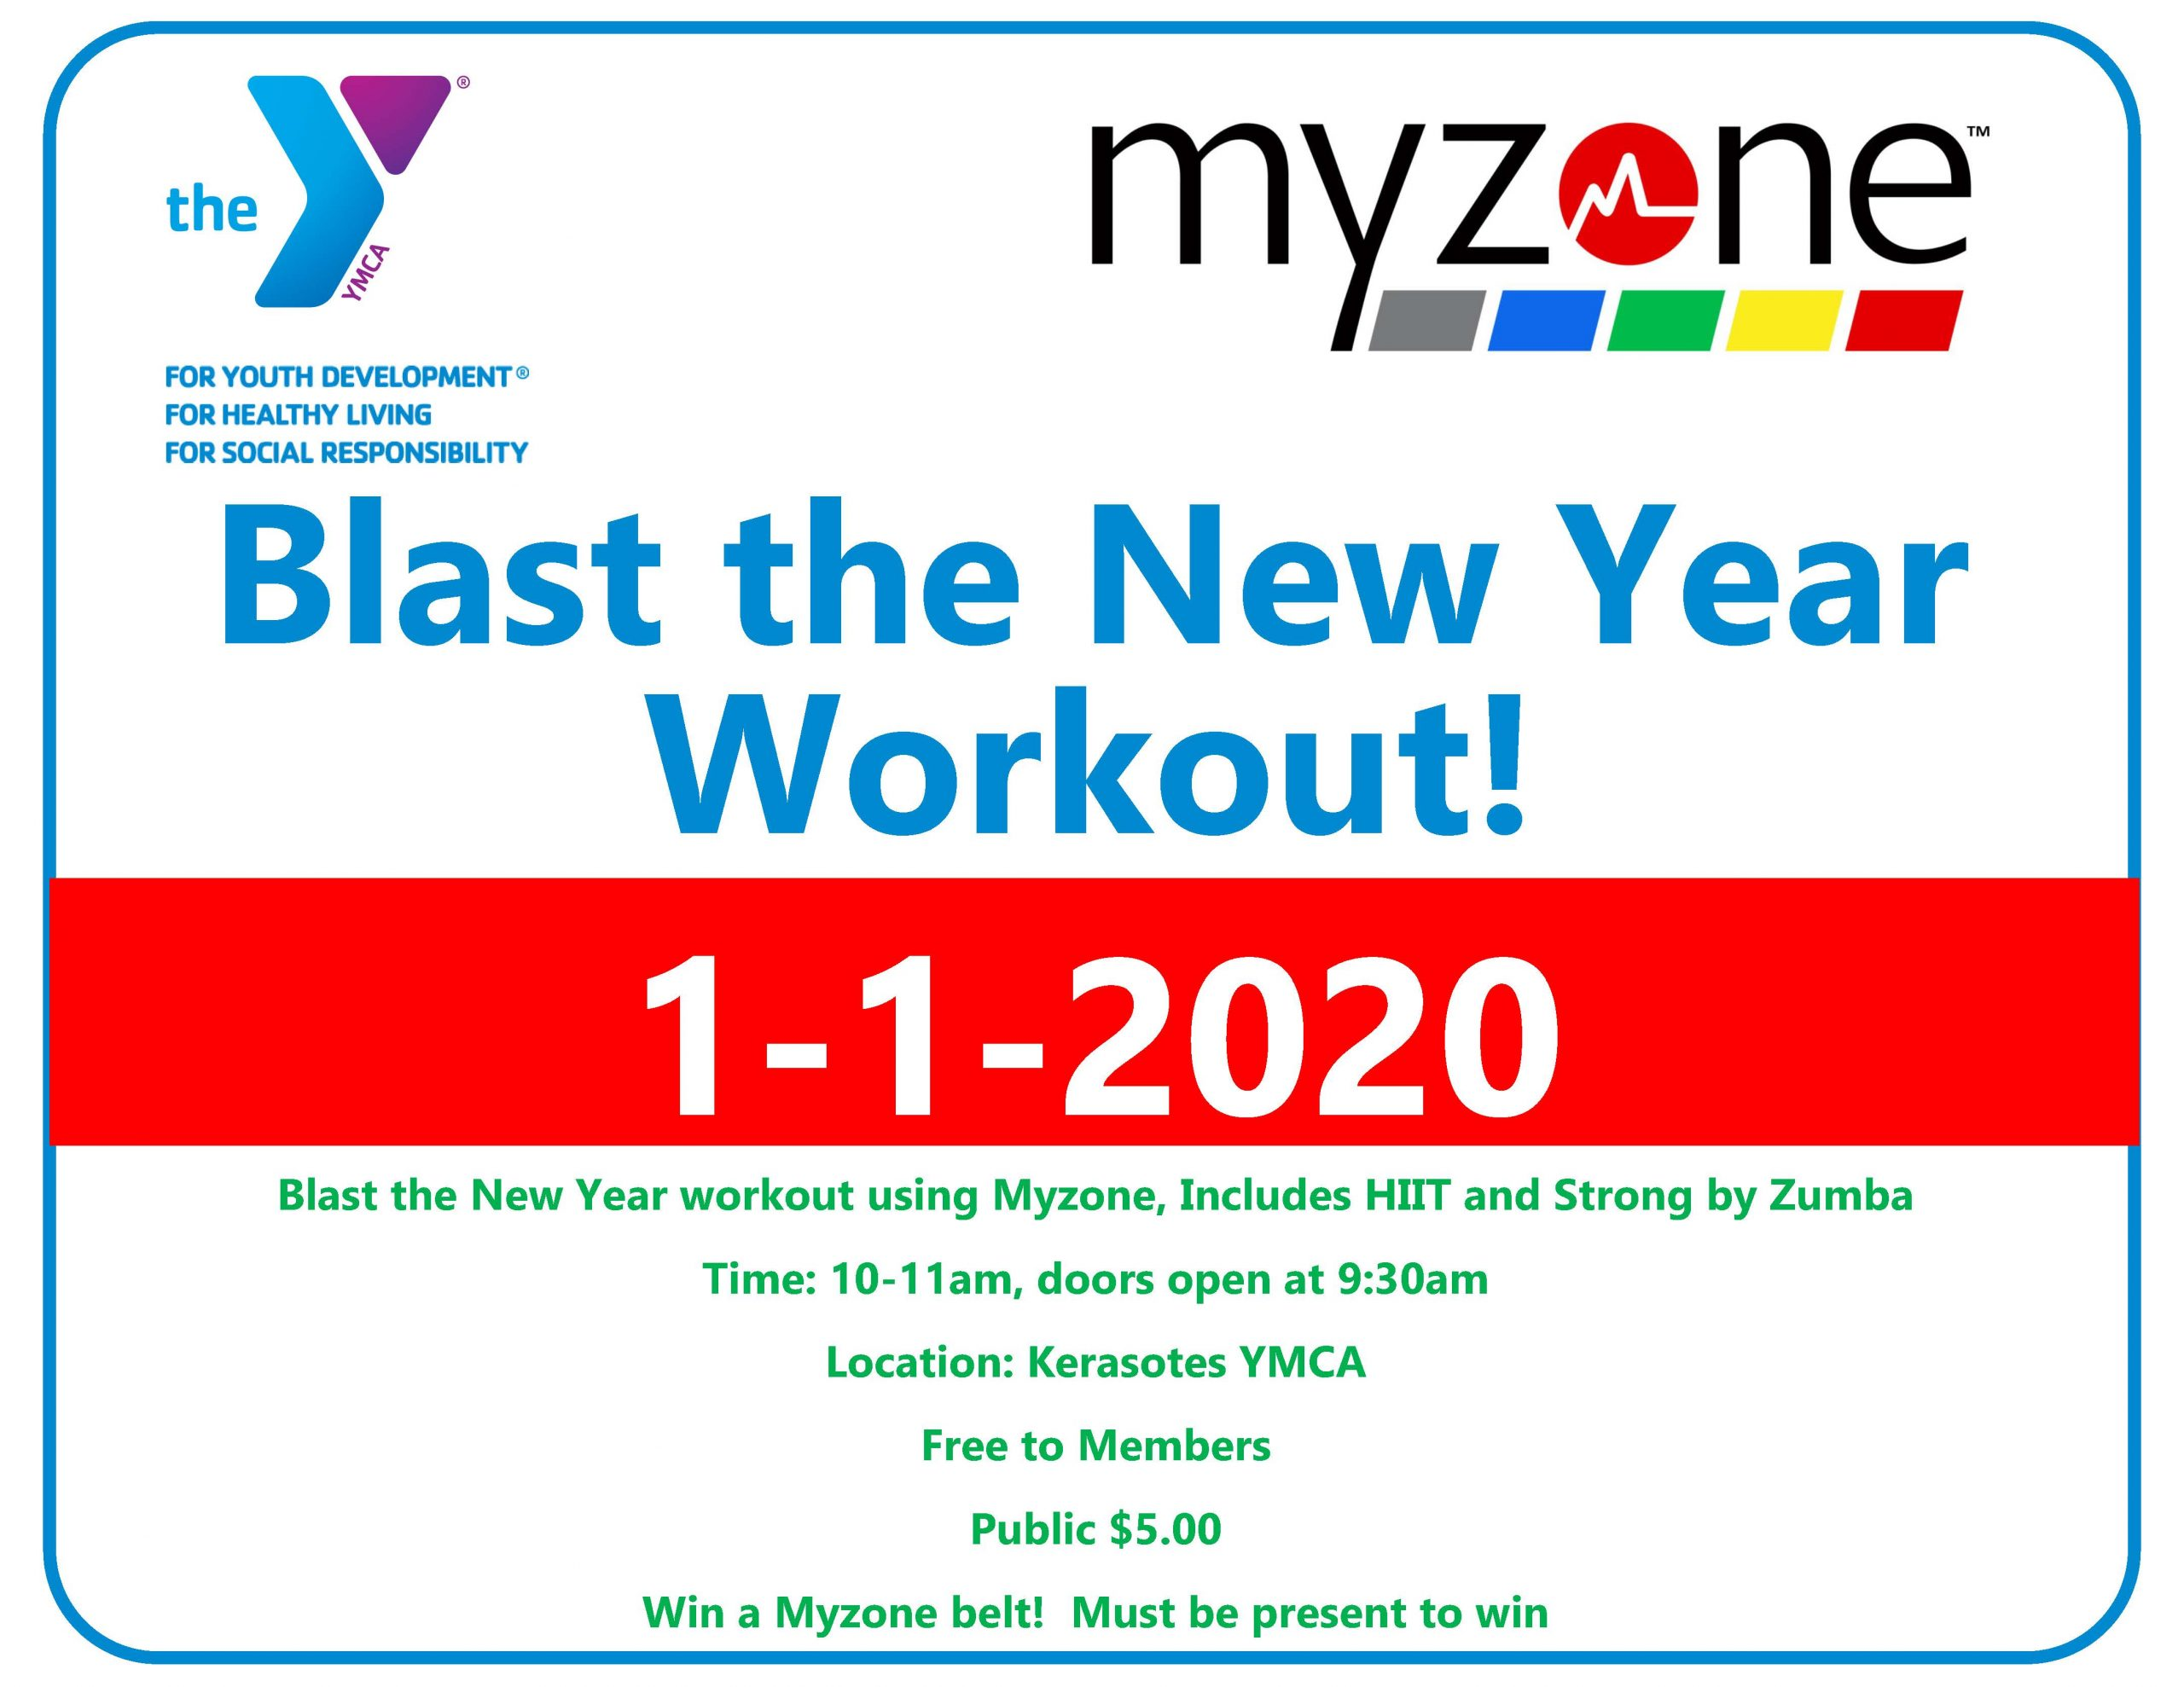 Blast the New Year Workout